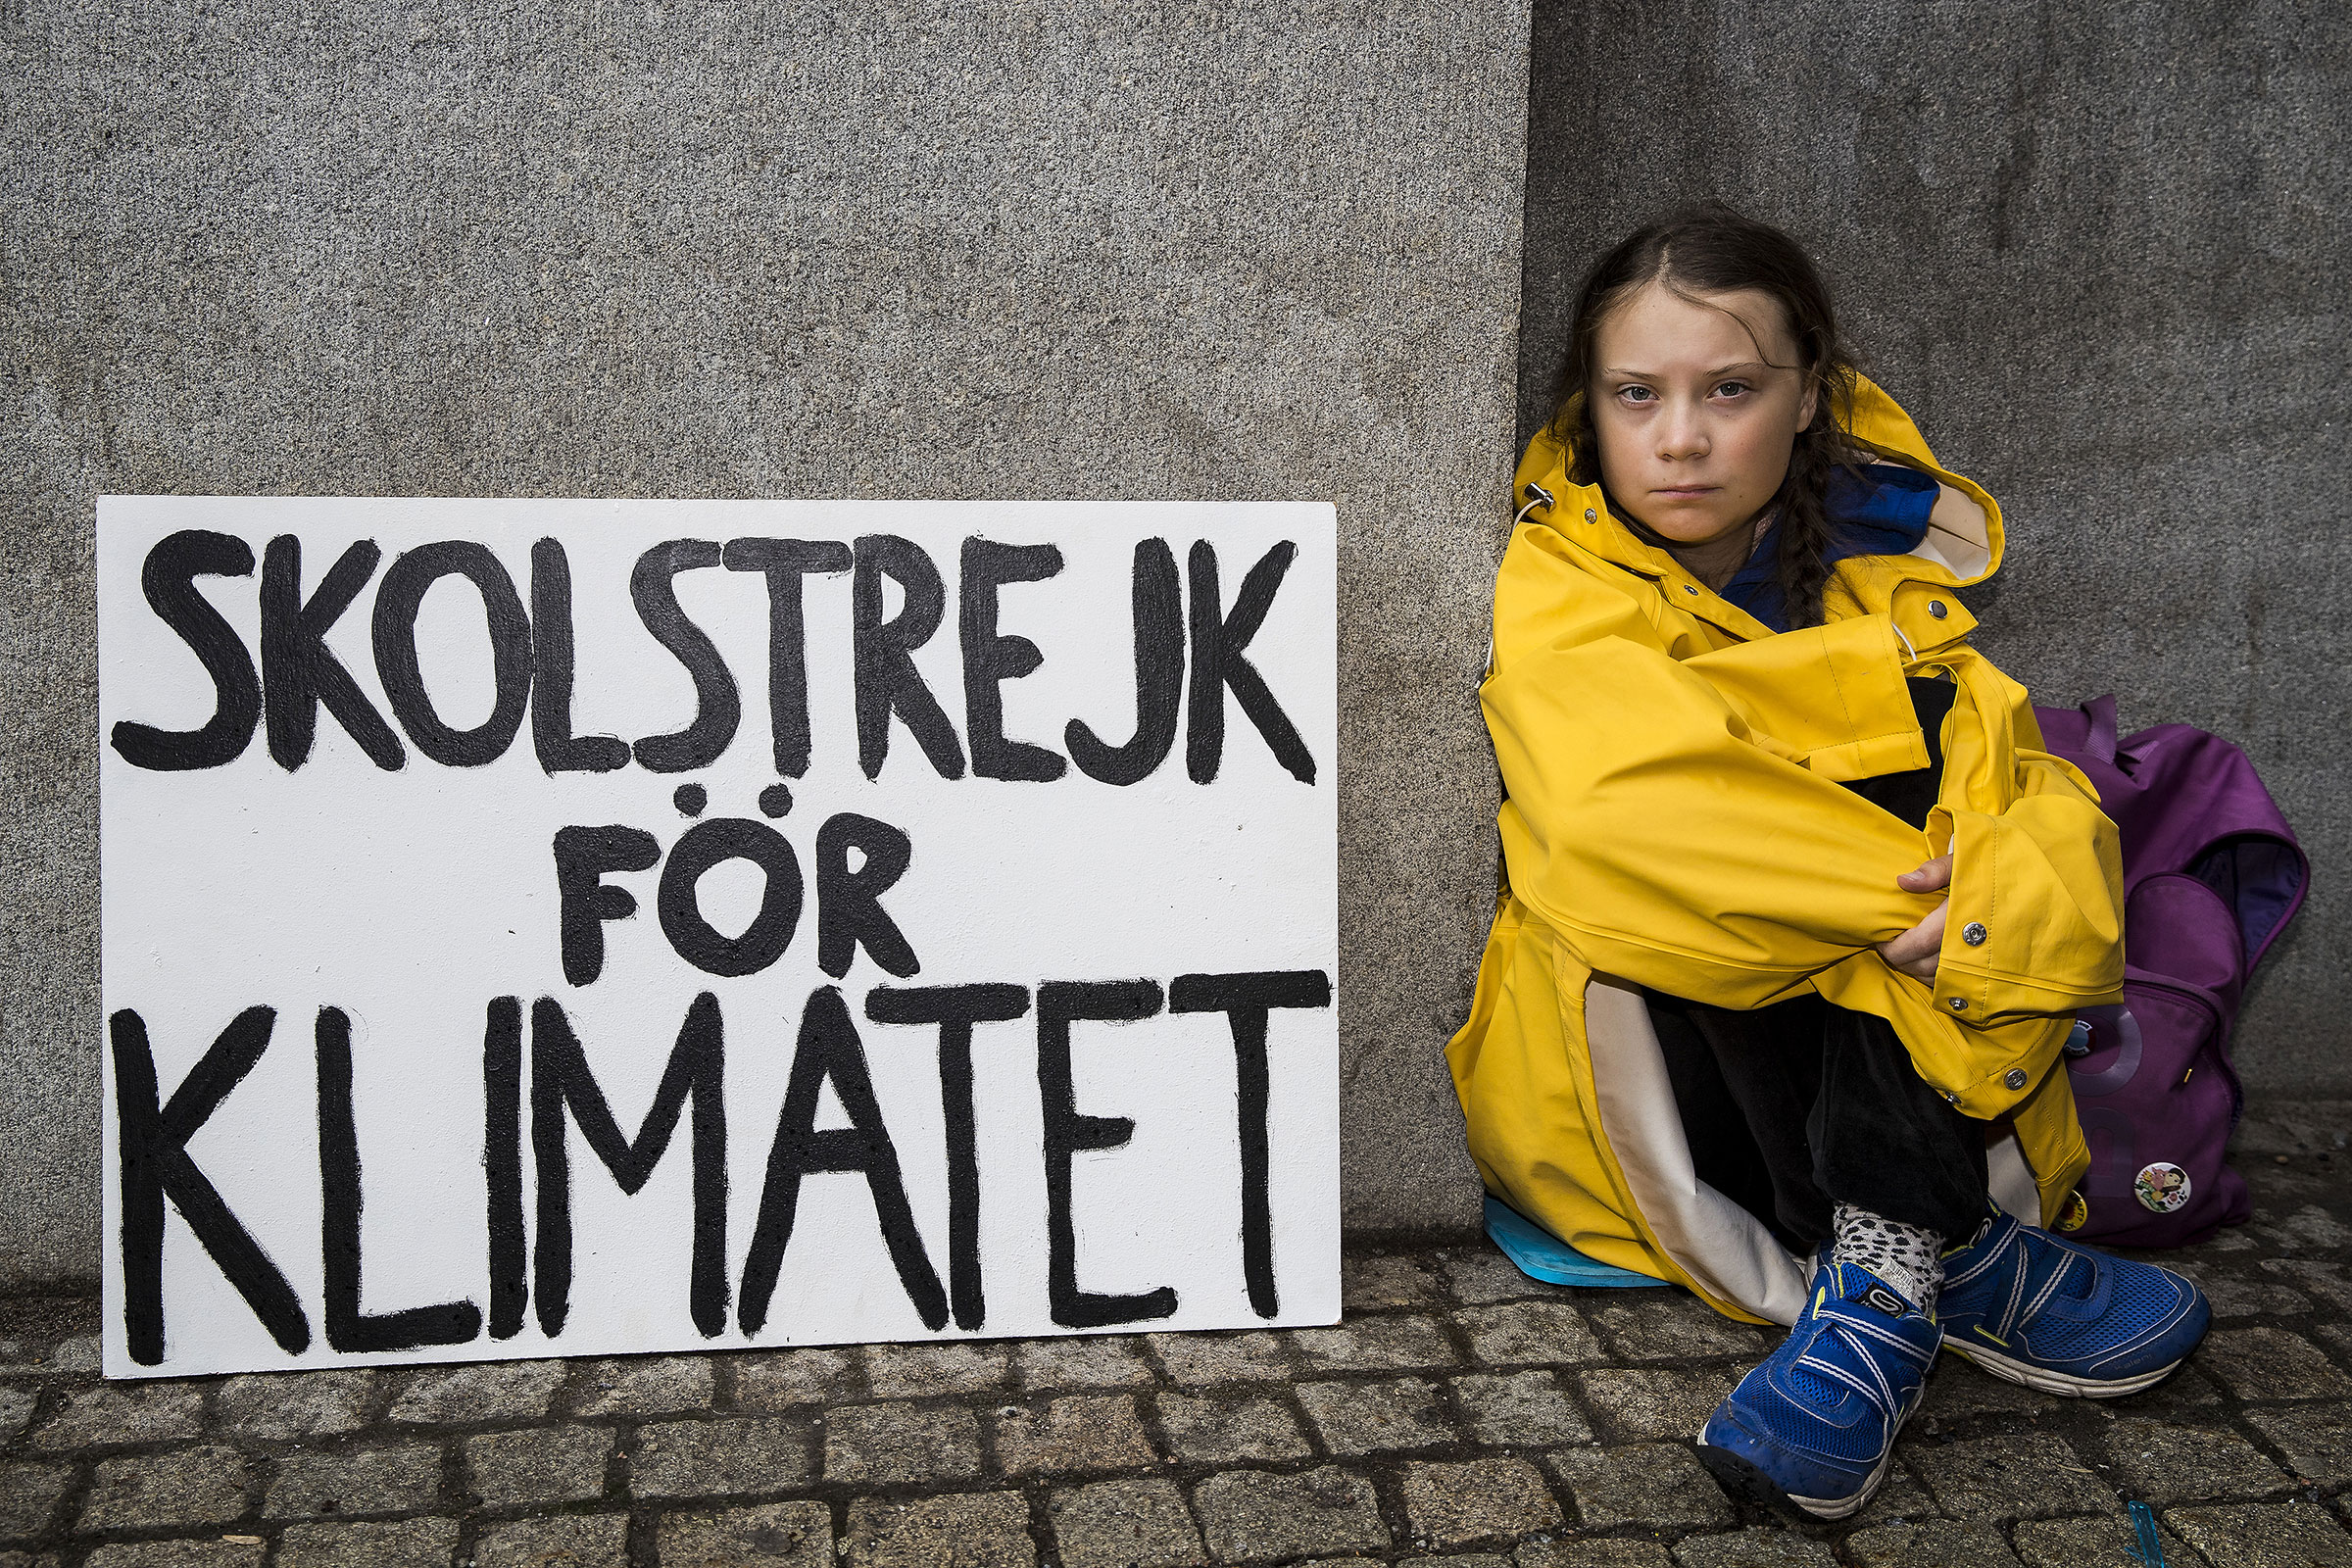 Thunberg first began skipping school in August 2018, sitting in front of Swedish Parliament to demand climate action